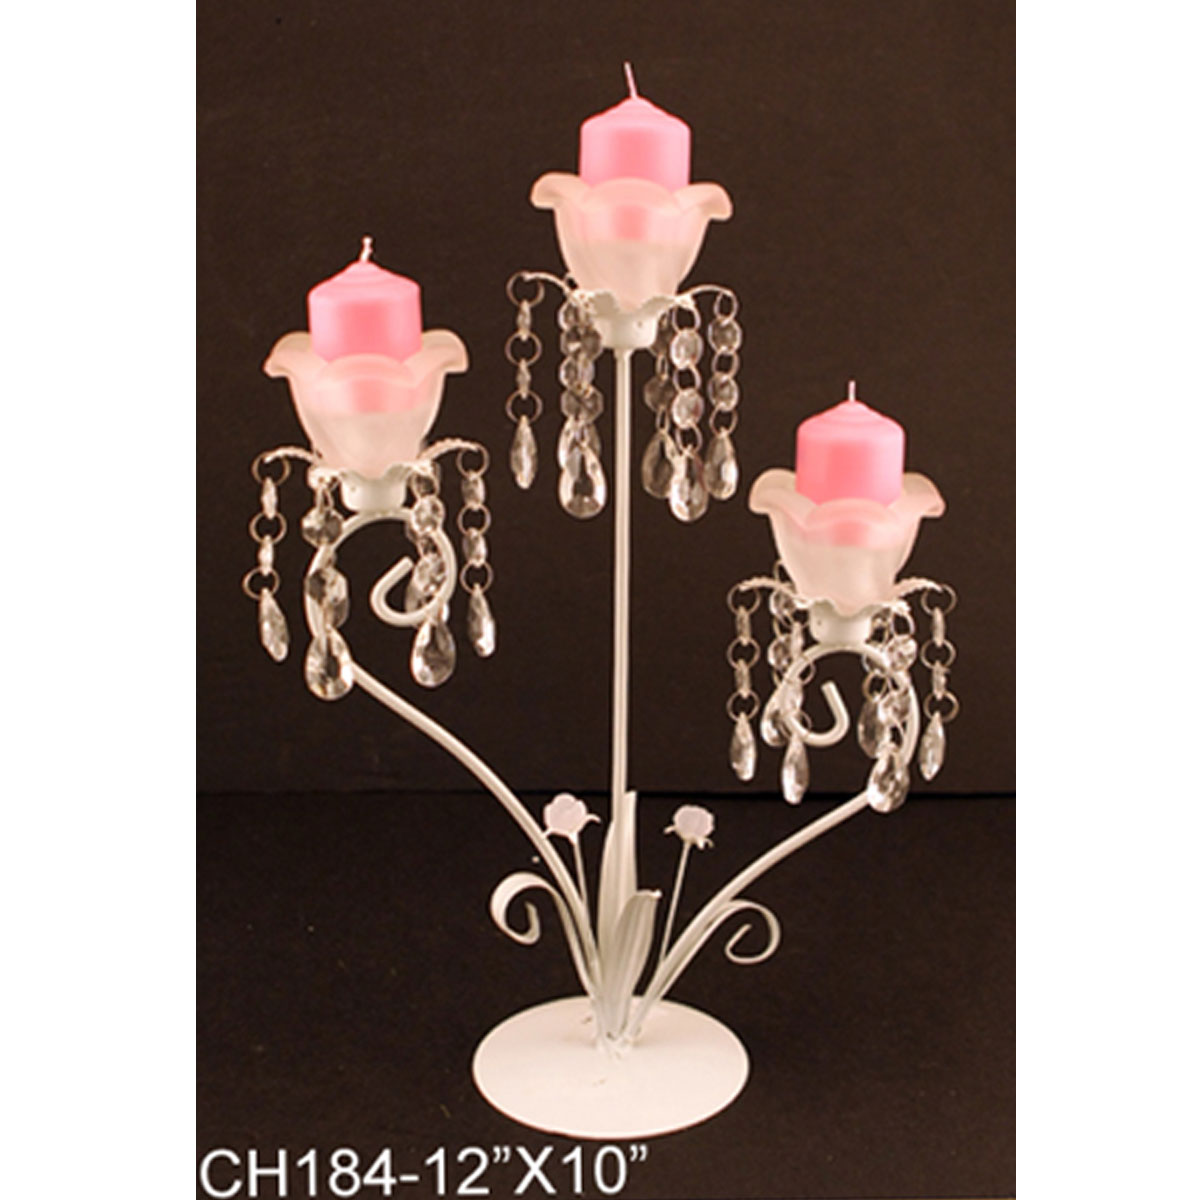 White Metal Pillar Candle Holders : Decorative white pillar metal centerpiece candle holder